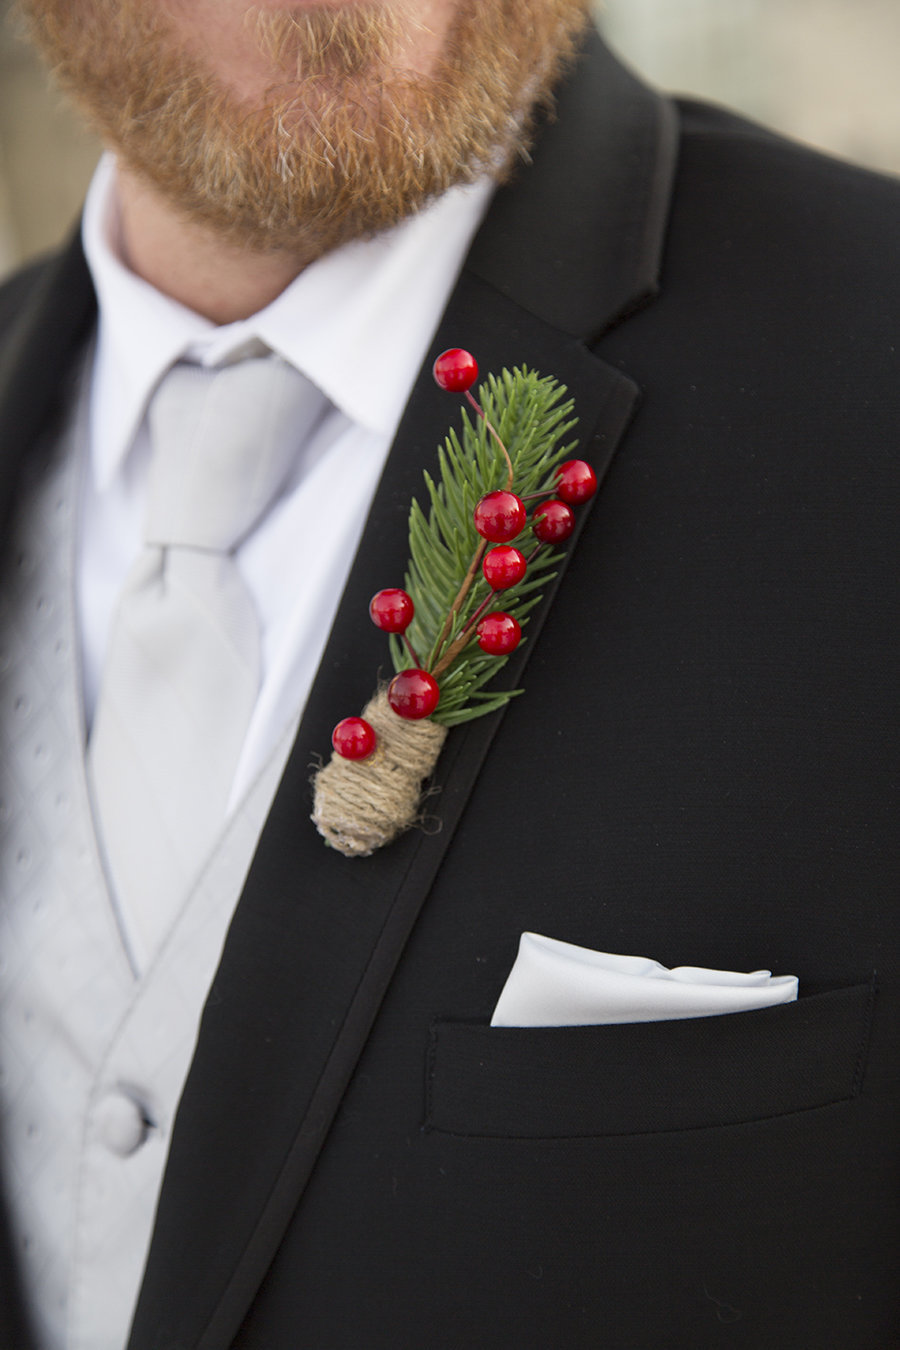 Ashley&JasonWedding Brillion Appleton wedding preview love story pine comb berry wedding christmas wedding red and green wedding winter wedding appleton wedding photographer15